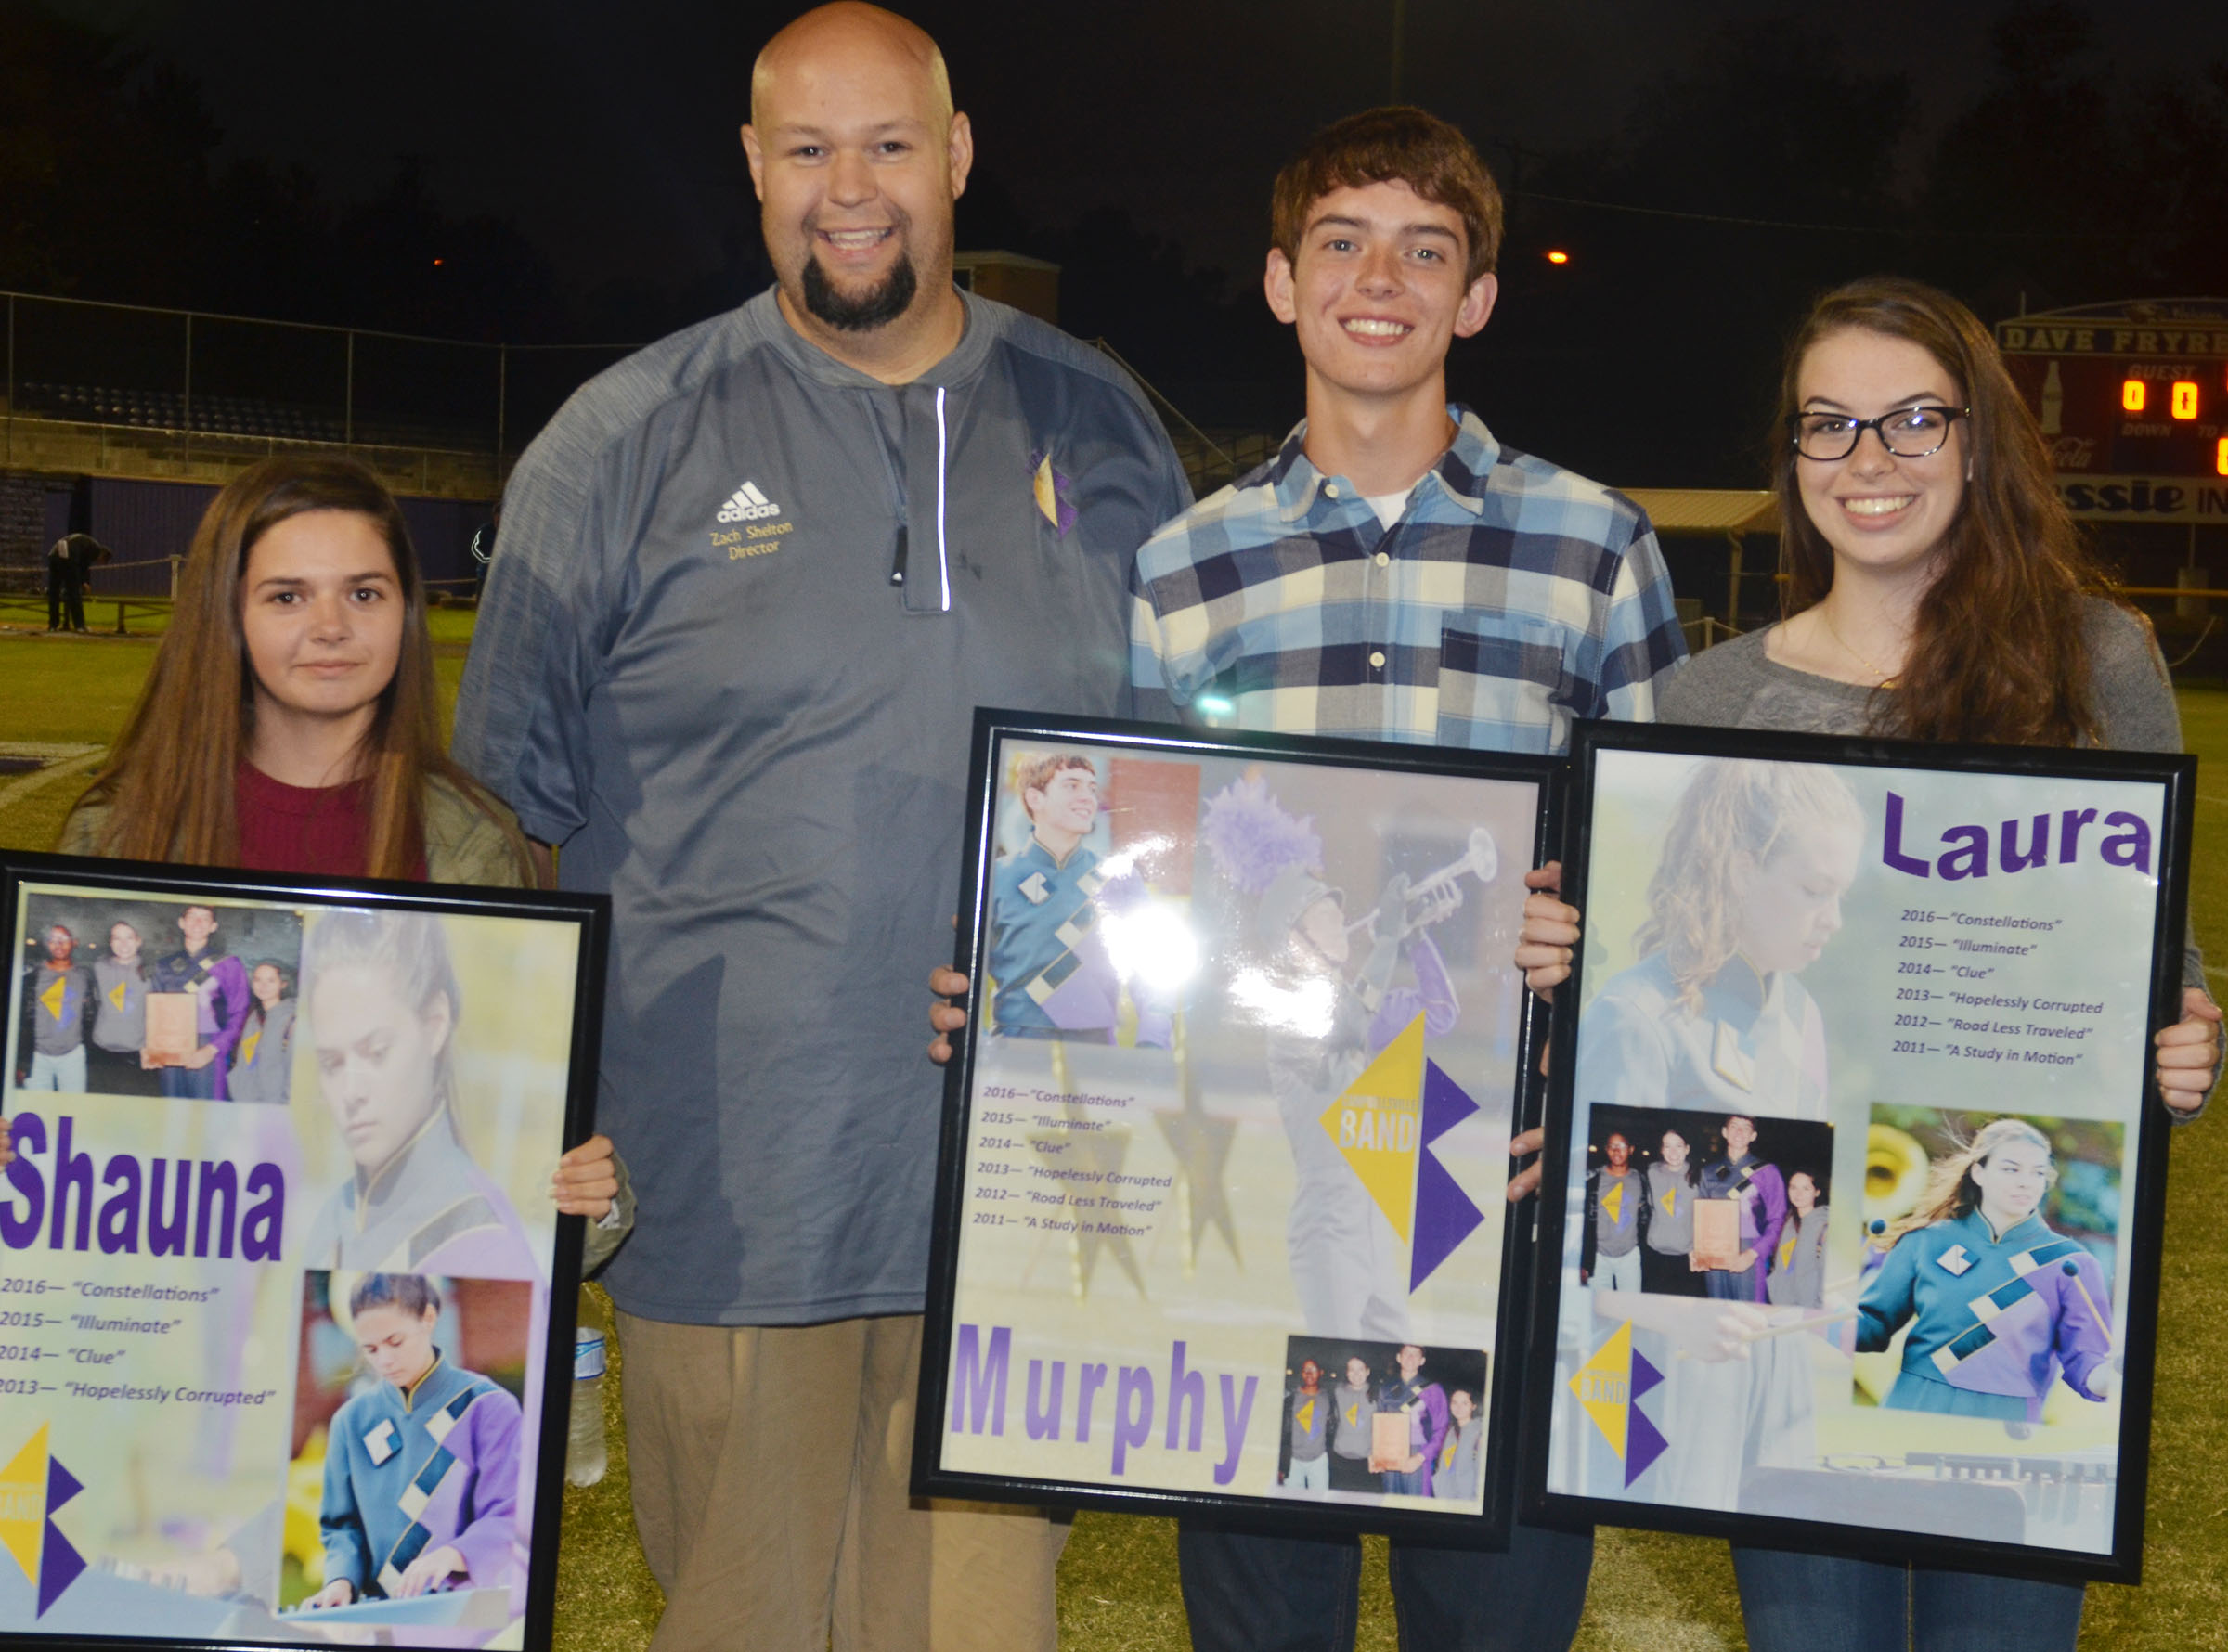 This year's CHS marching band seniors are, from left, Shauna Jones, band director Zach Shelton, Murphy Lamb and Laura Lamb. Absent from the photo is Jaleel Cowan.